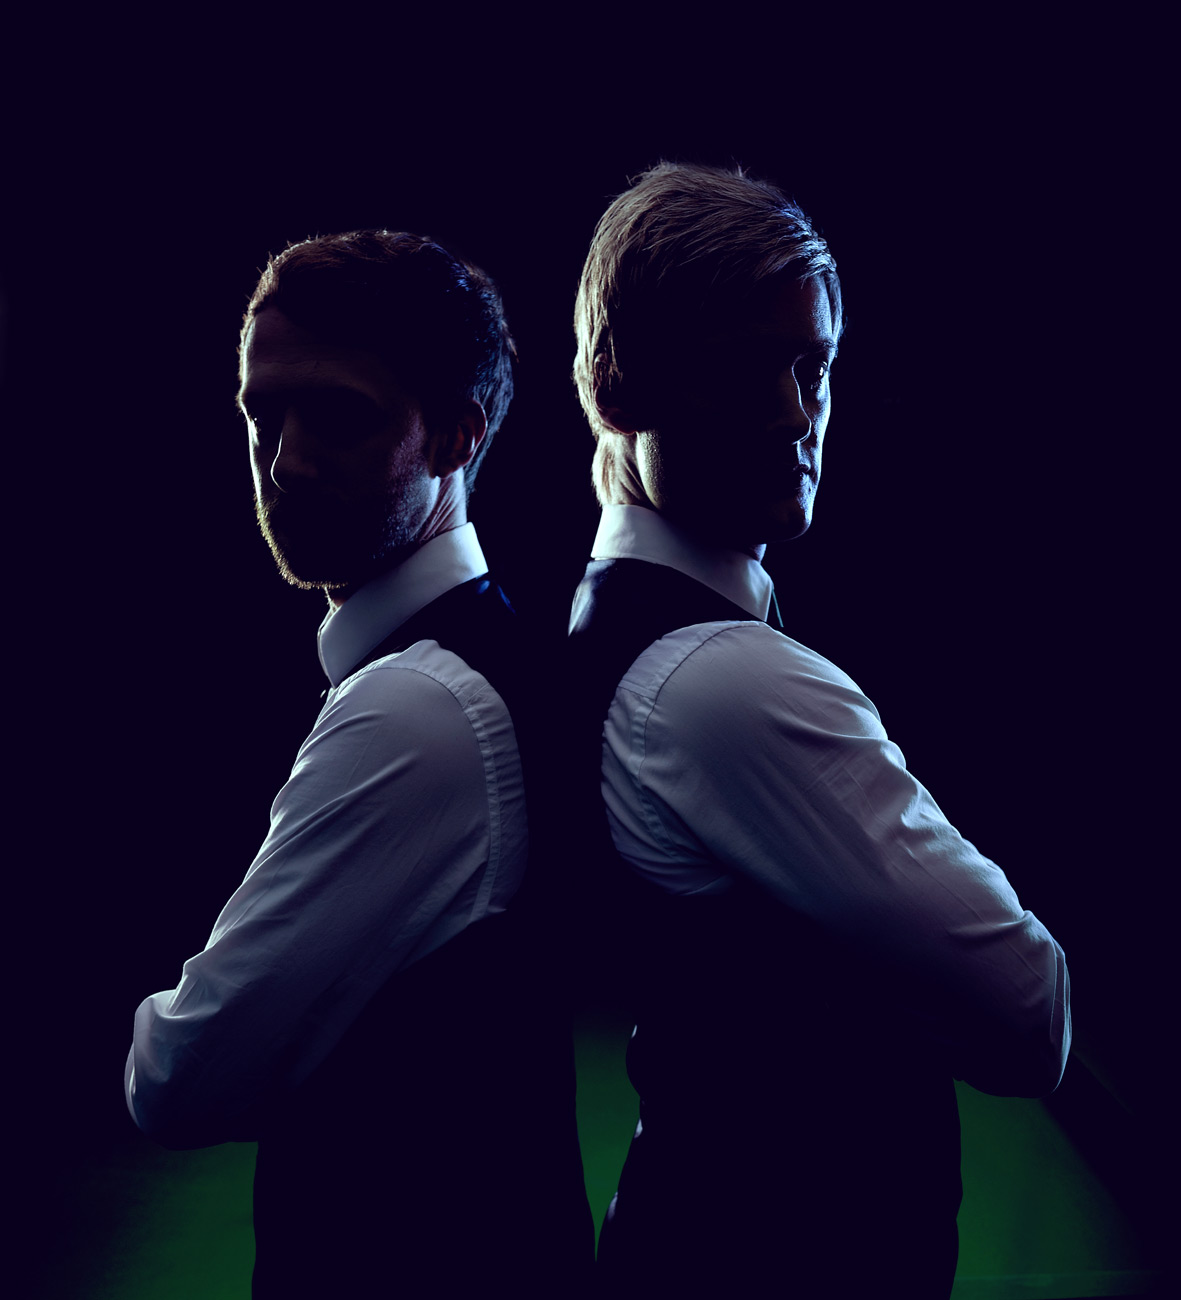 Judd Trump and Neil Robertson photographed for Snooker Live Pro by CliQQ Photography